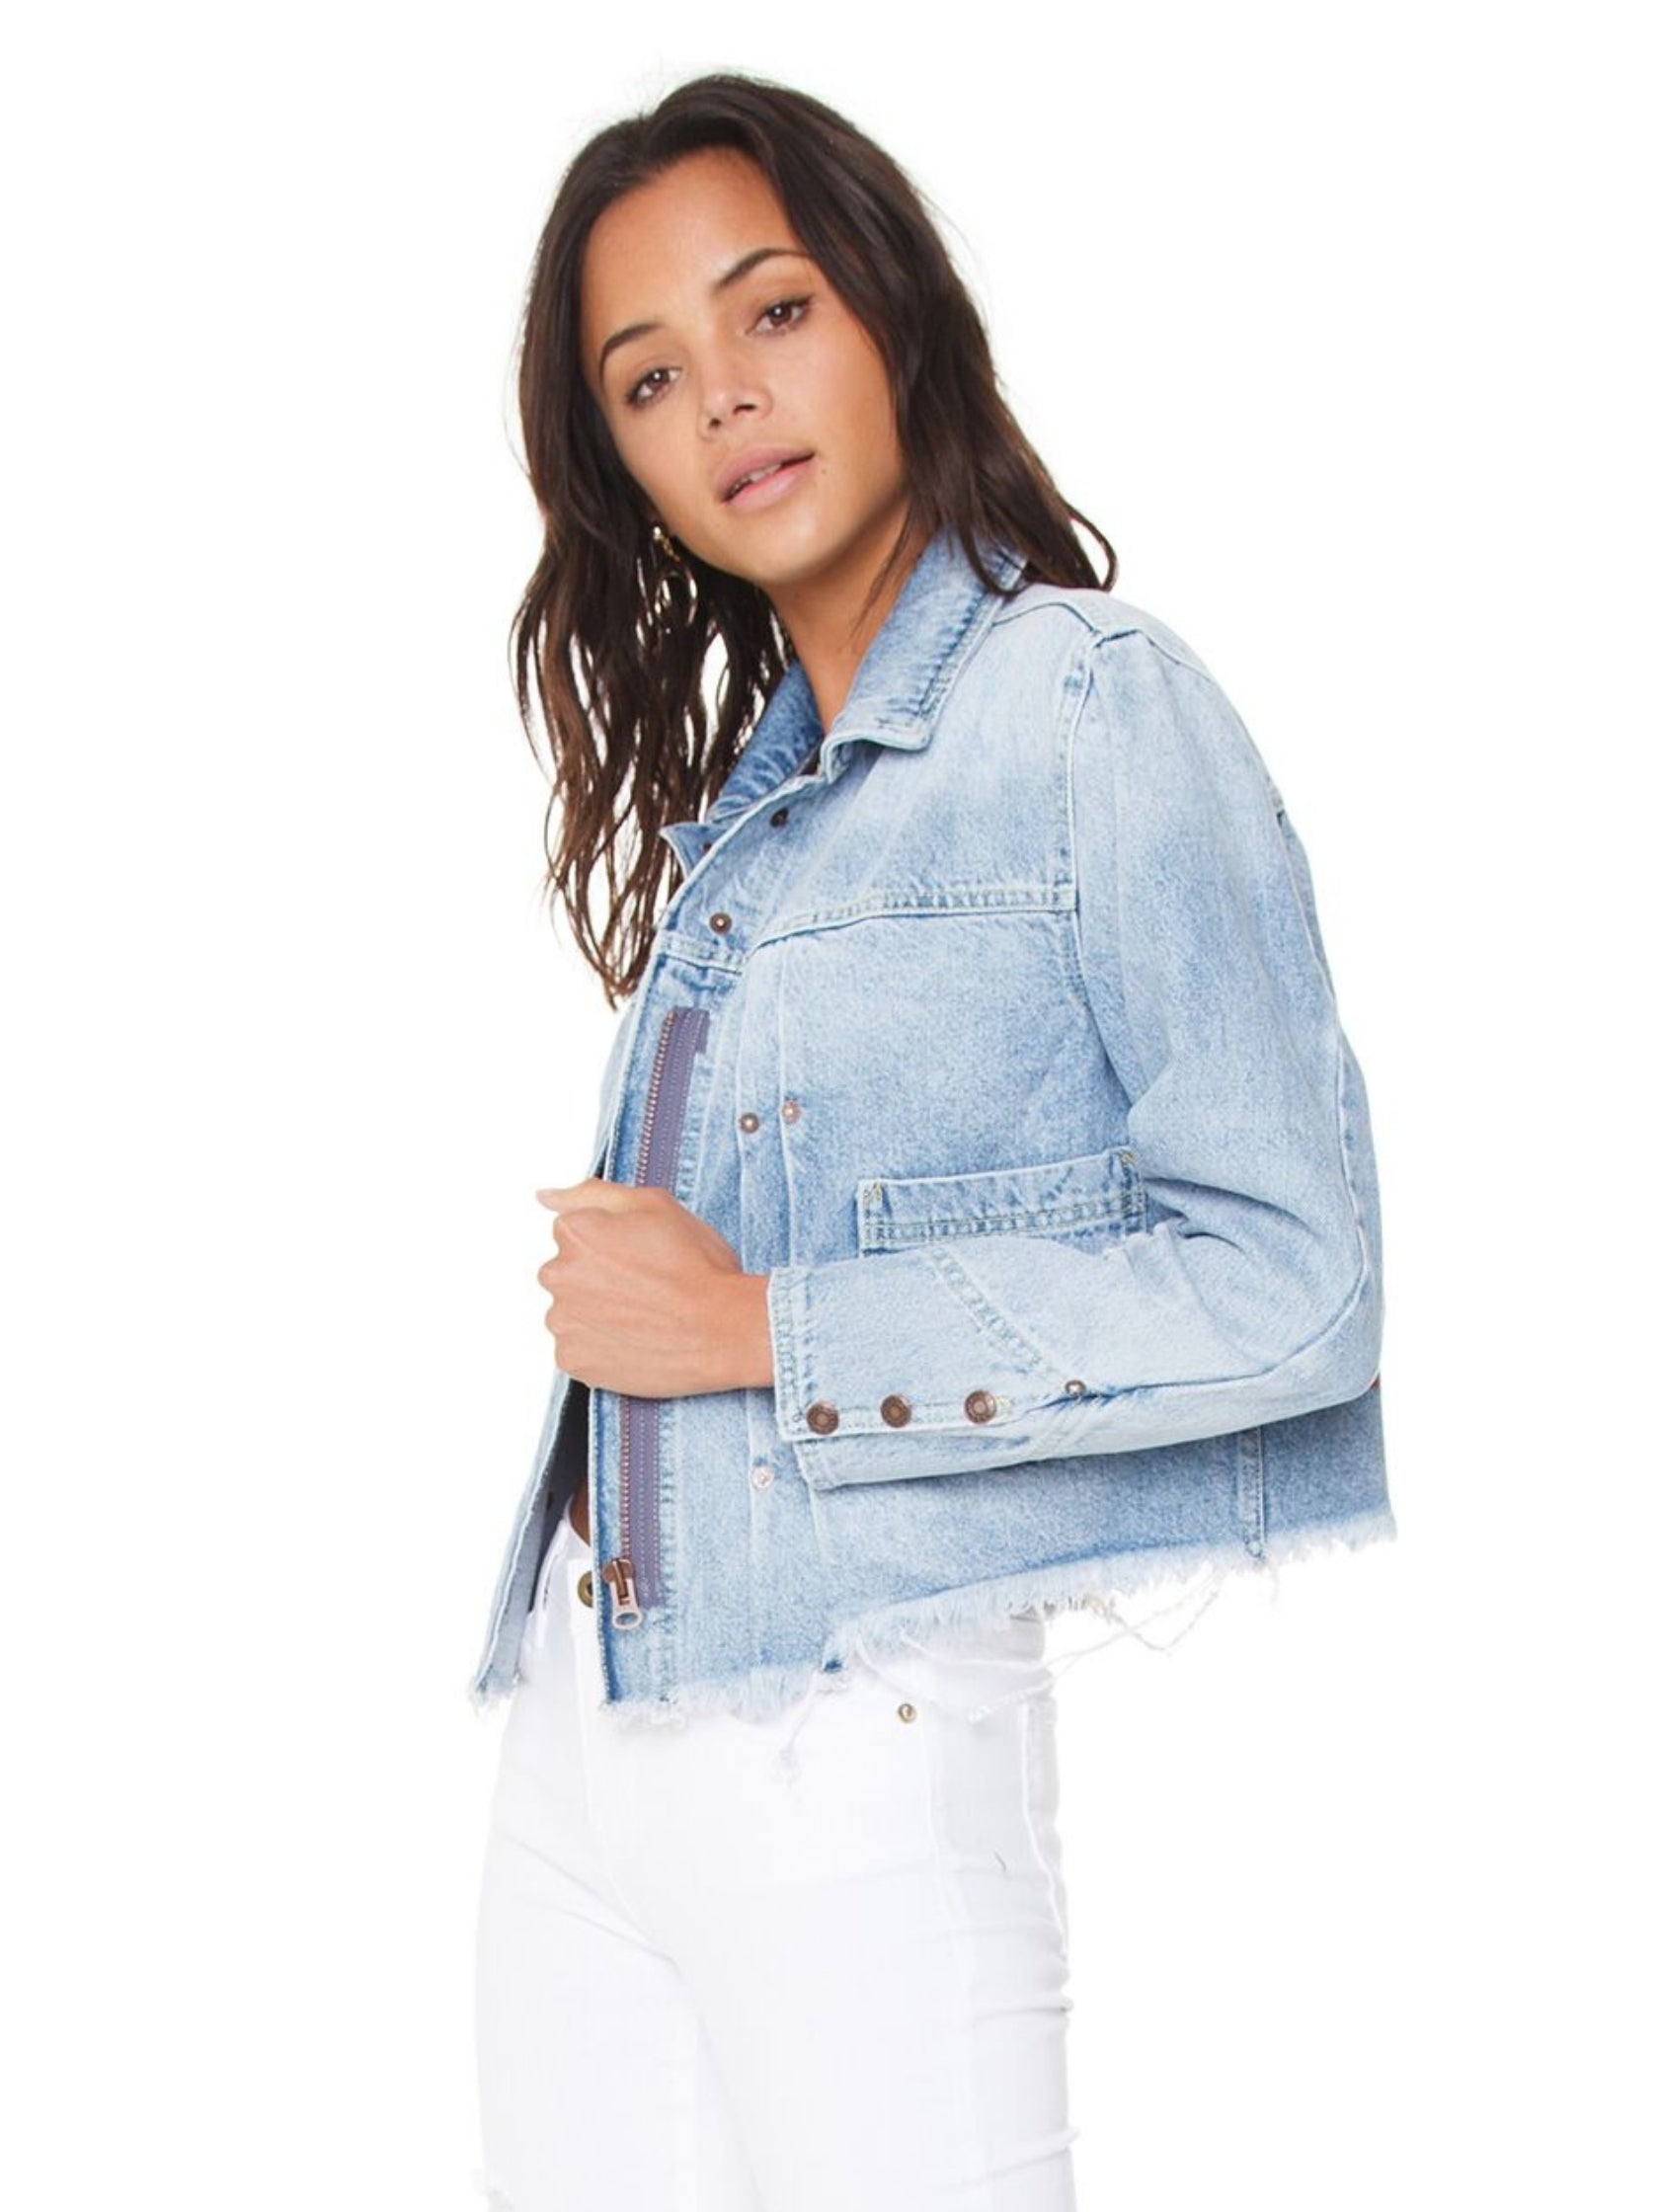 Women wearing a jacket rental from Free People called Dillon Denim Jacket